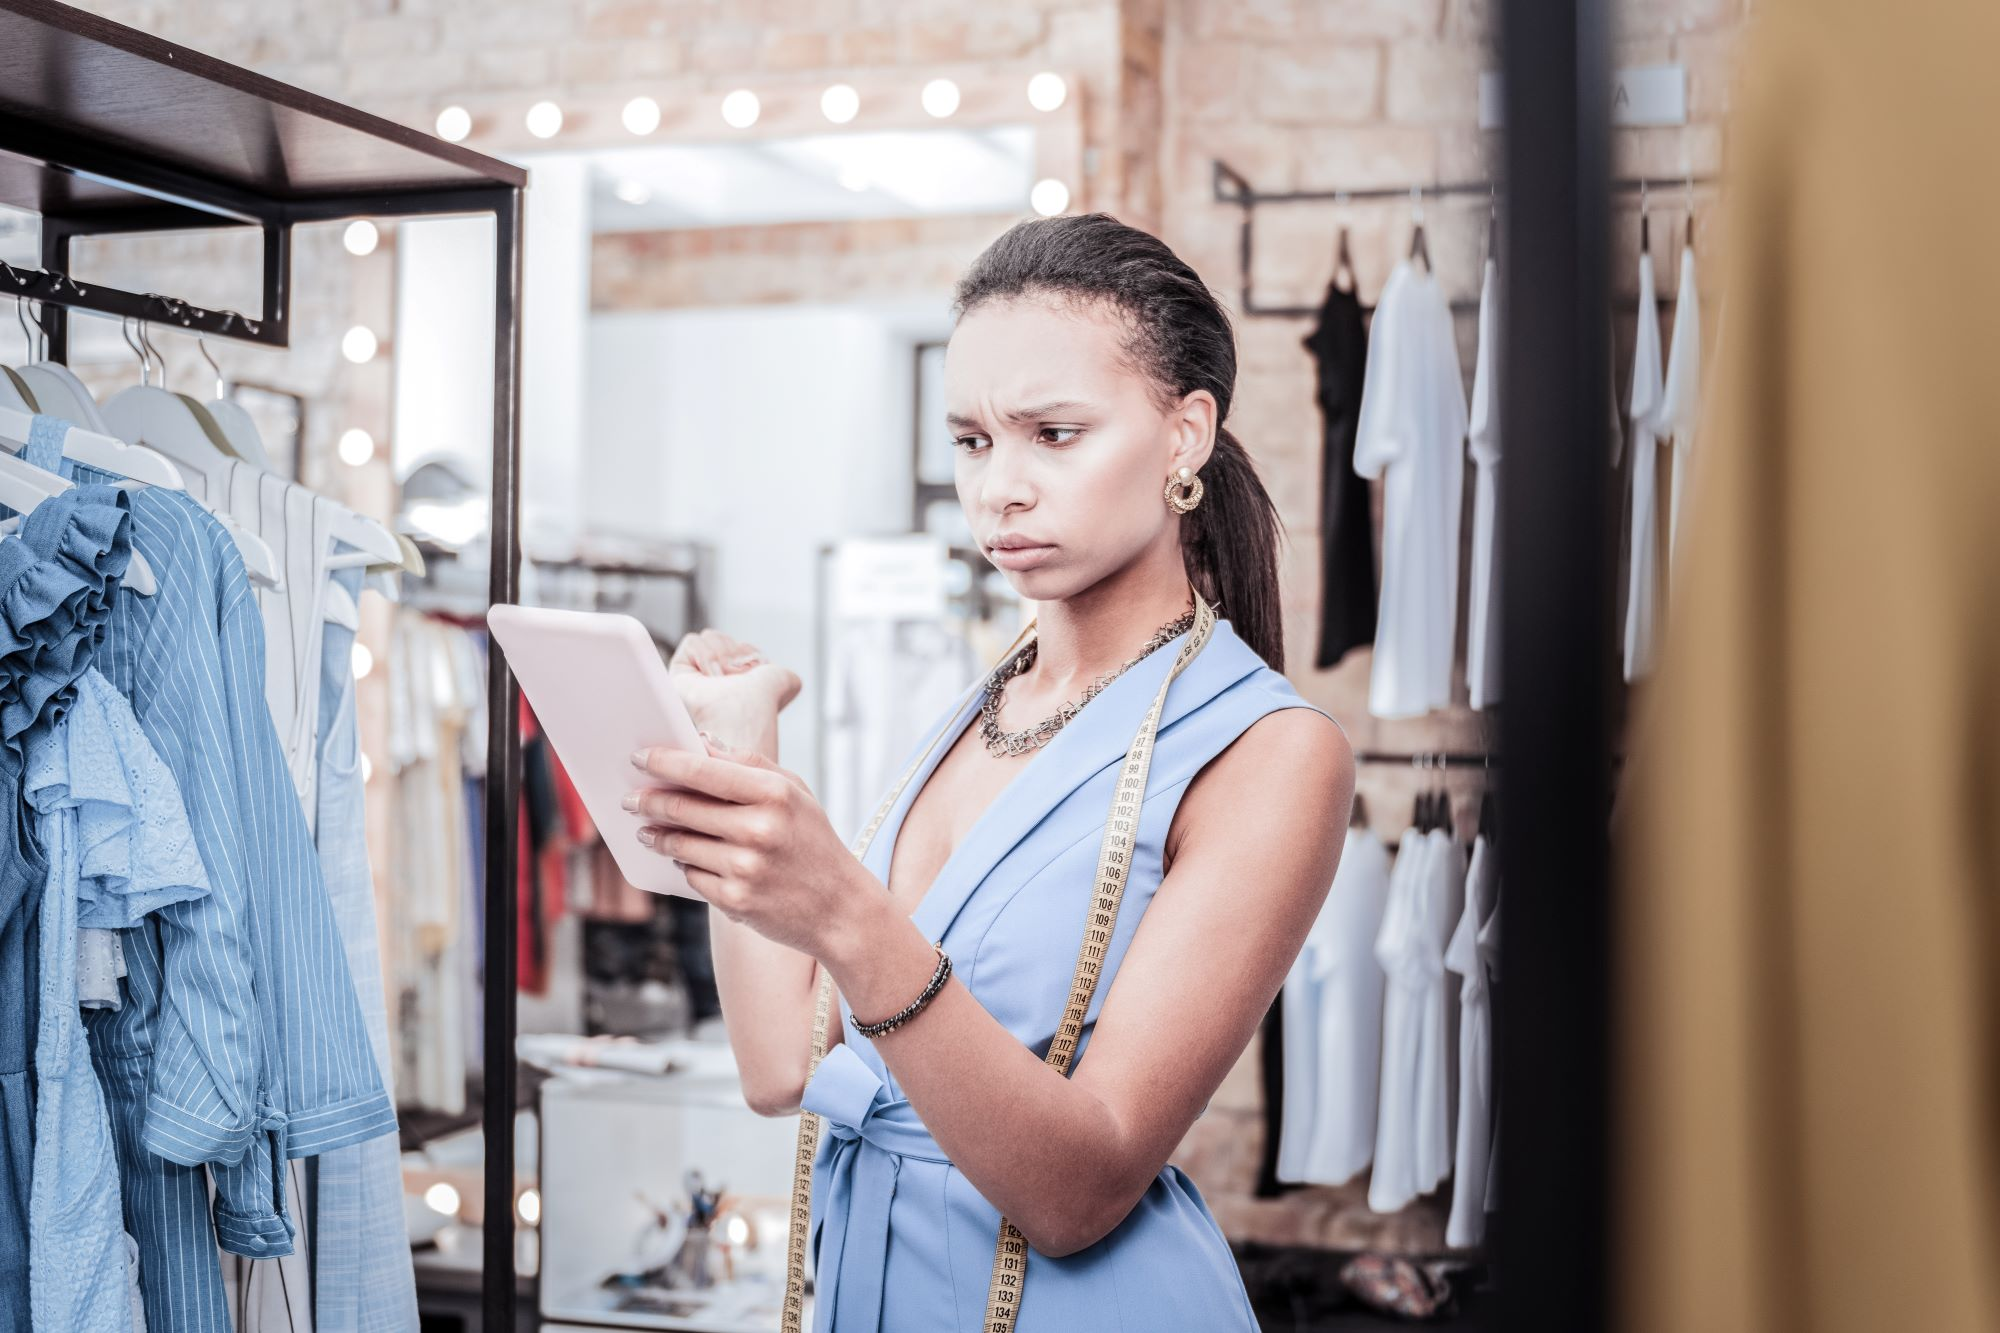 Tips For Turning Your Side Hustle Into a Thriving Full-Time Business